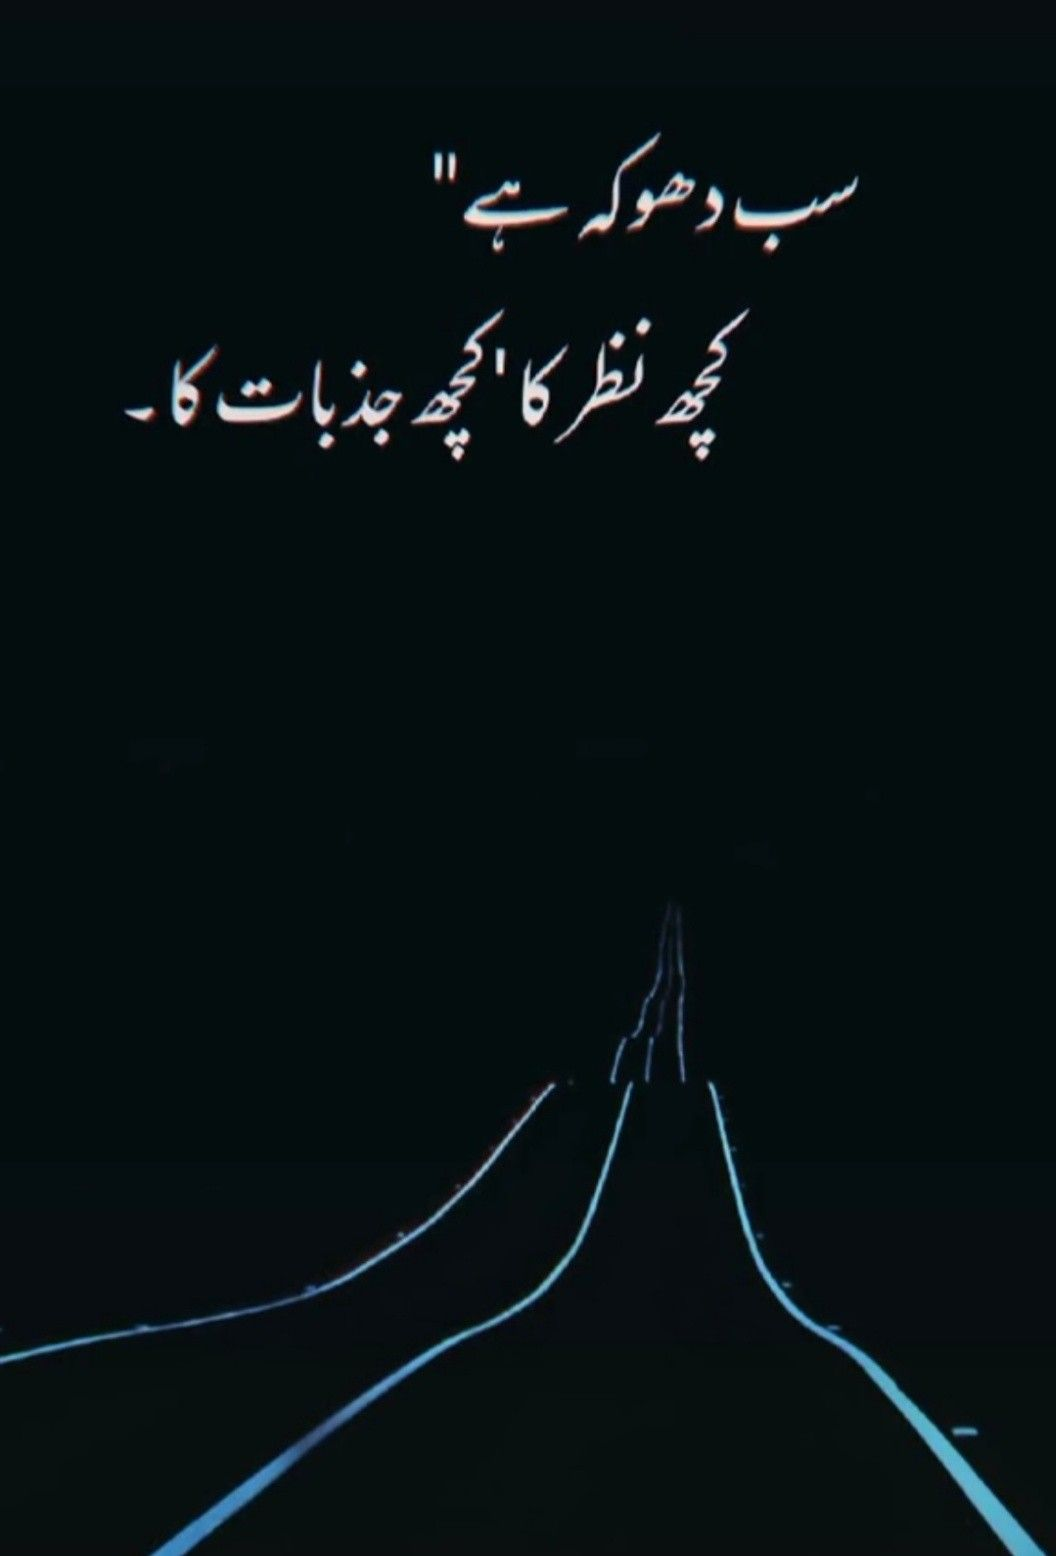 Pin By Zoya Siddiqui On Taunting Quotes Friendship Quotes Funny Urdu Funny Quotes Taunting Quotes